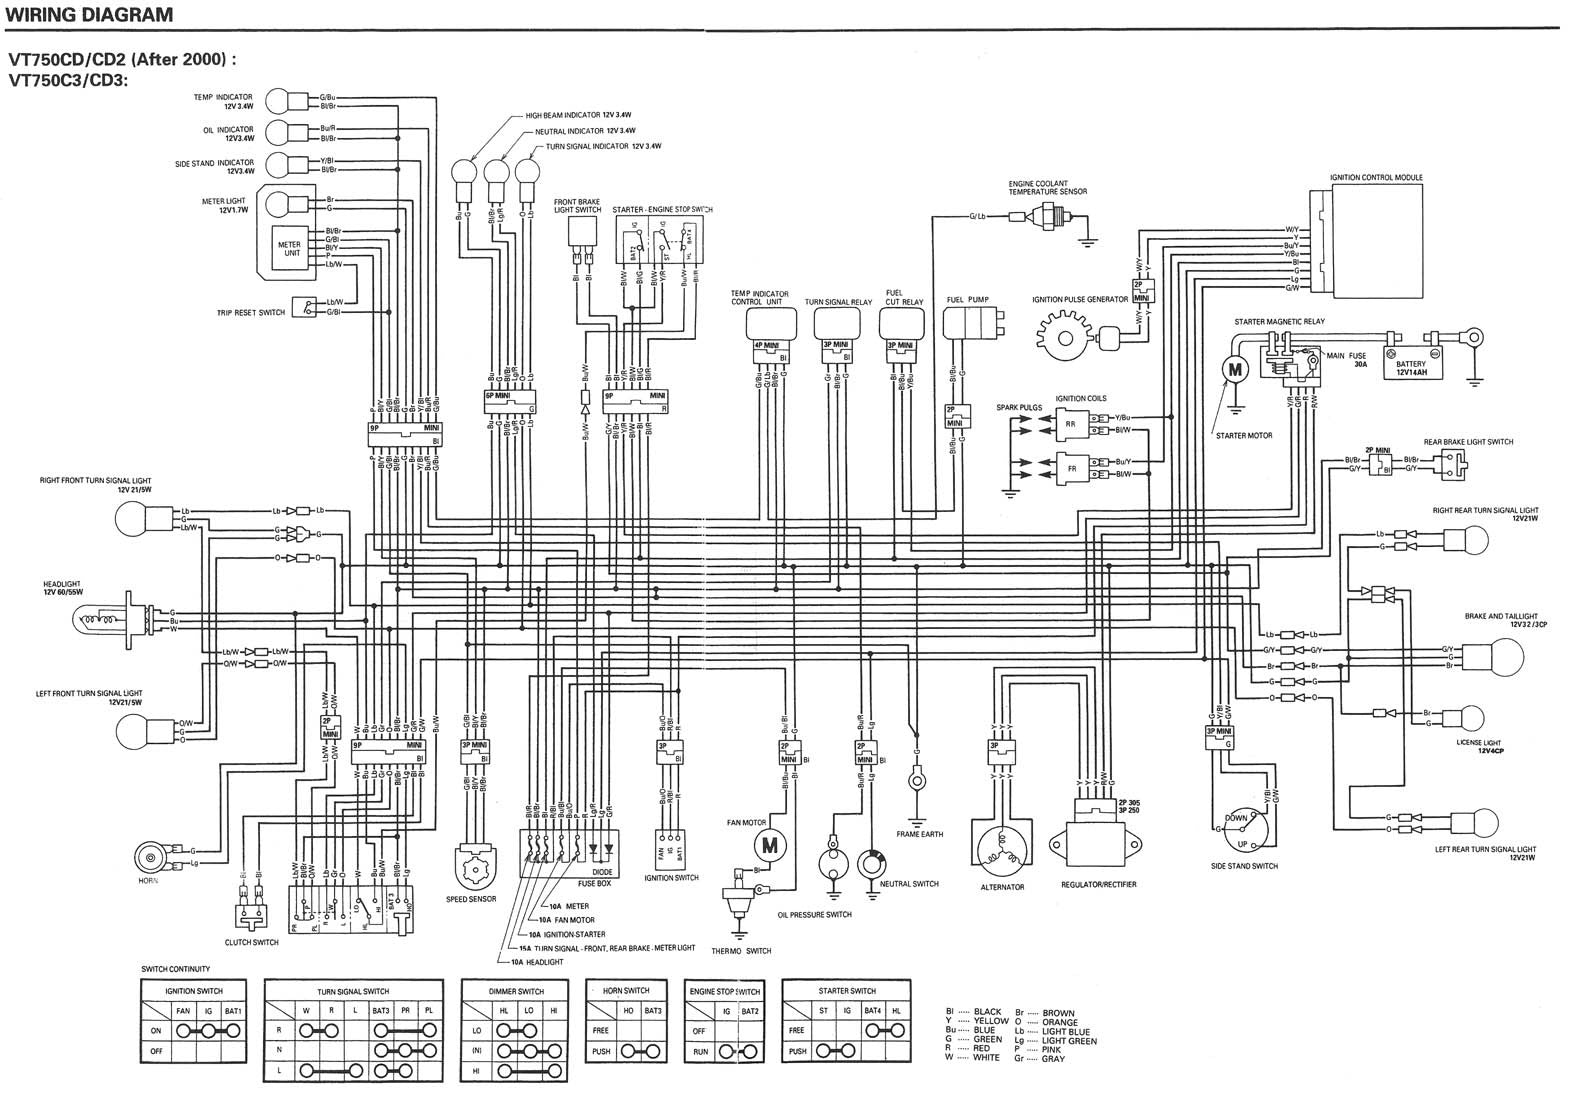 VT750_ACE_Wiring_Diagram_2001 2003_V.2?17490154244262524096 faq tj brutal customs honda shadow vlx 600 wiring diagram at edmiracle.co